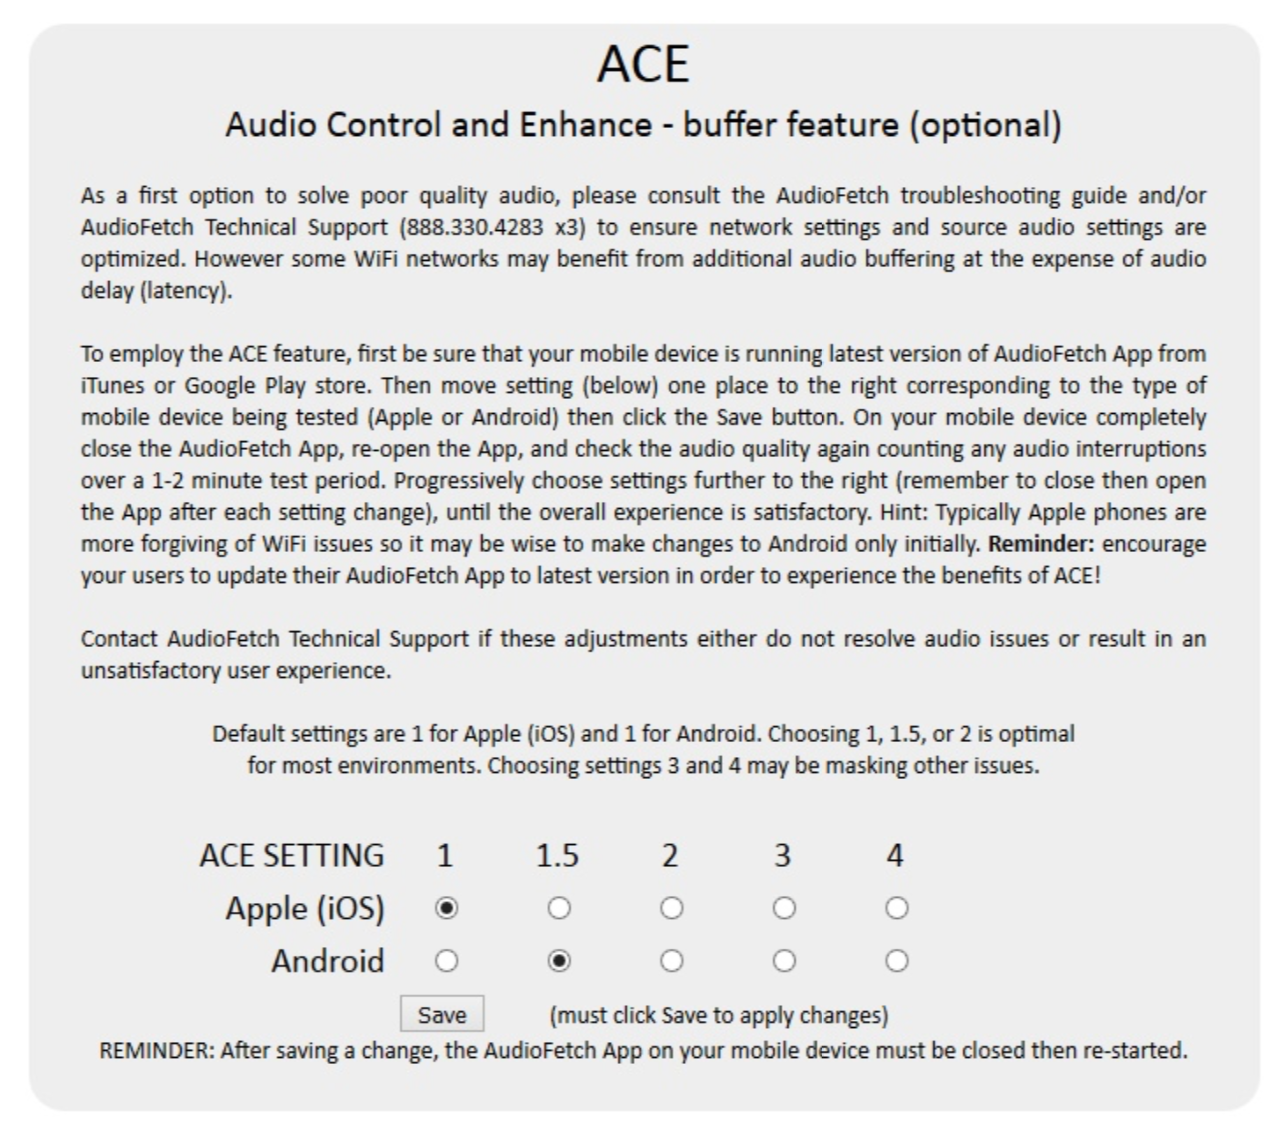 AudioFetch Doghouse Configuration - ACE